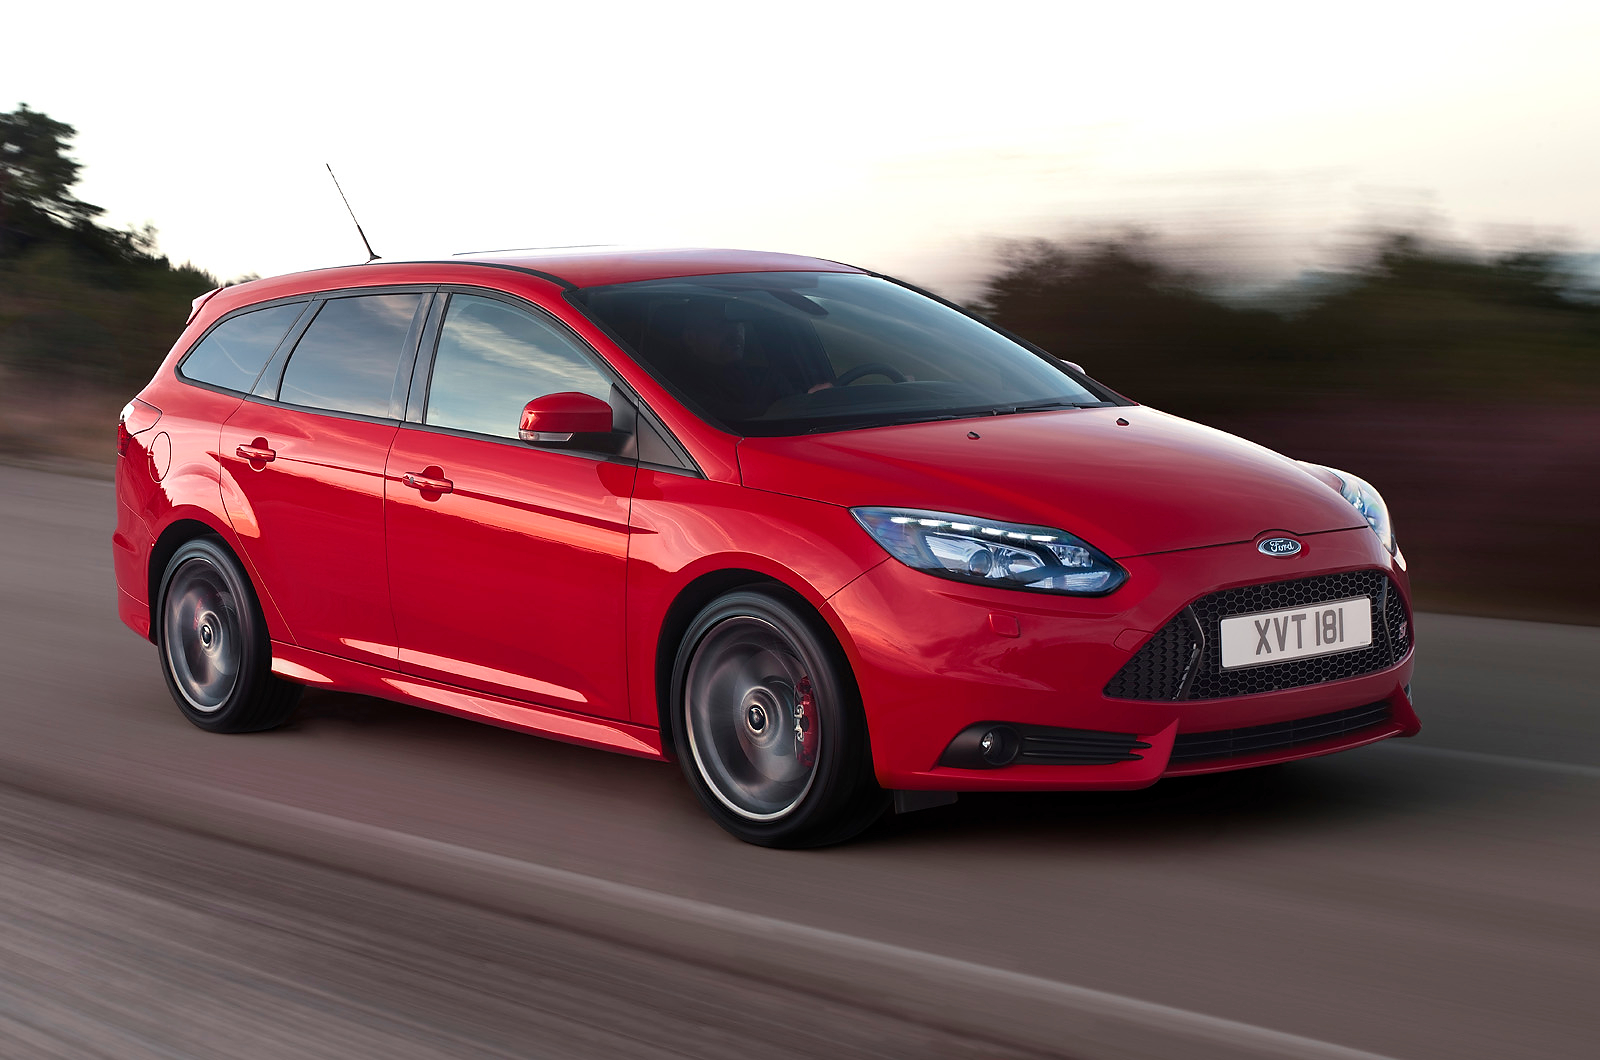 & Ford Focus ST estate review review | Autocar markmcfarlin.com